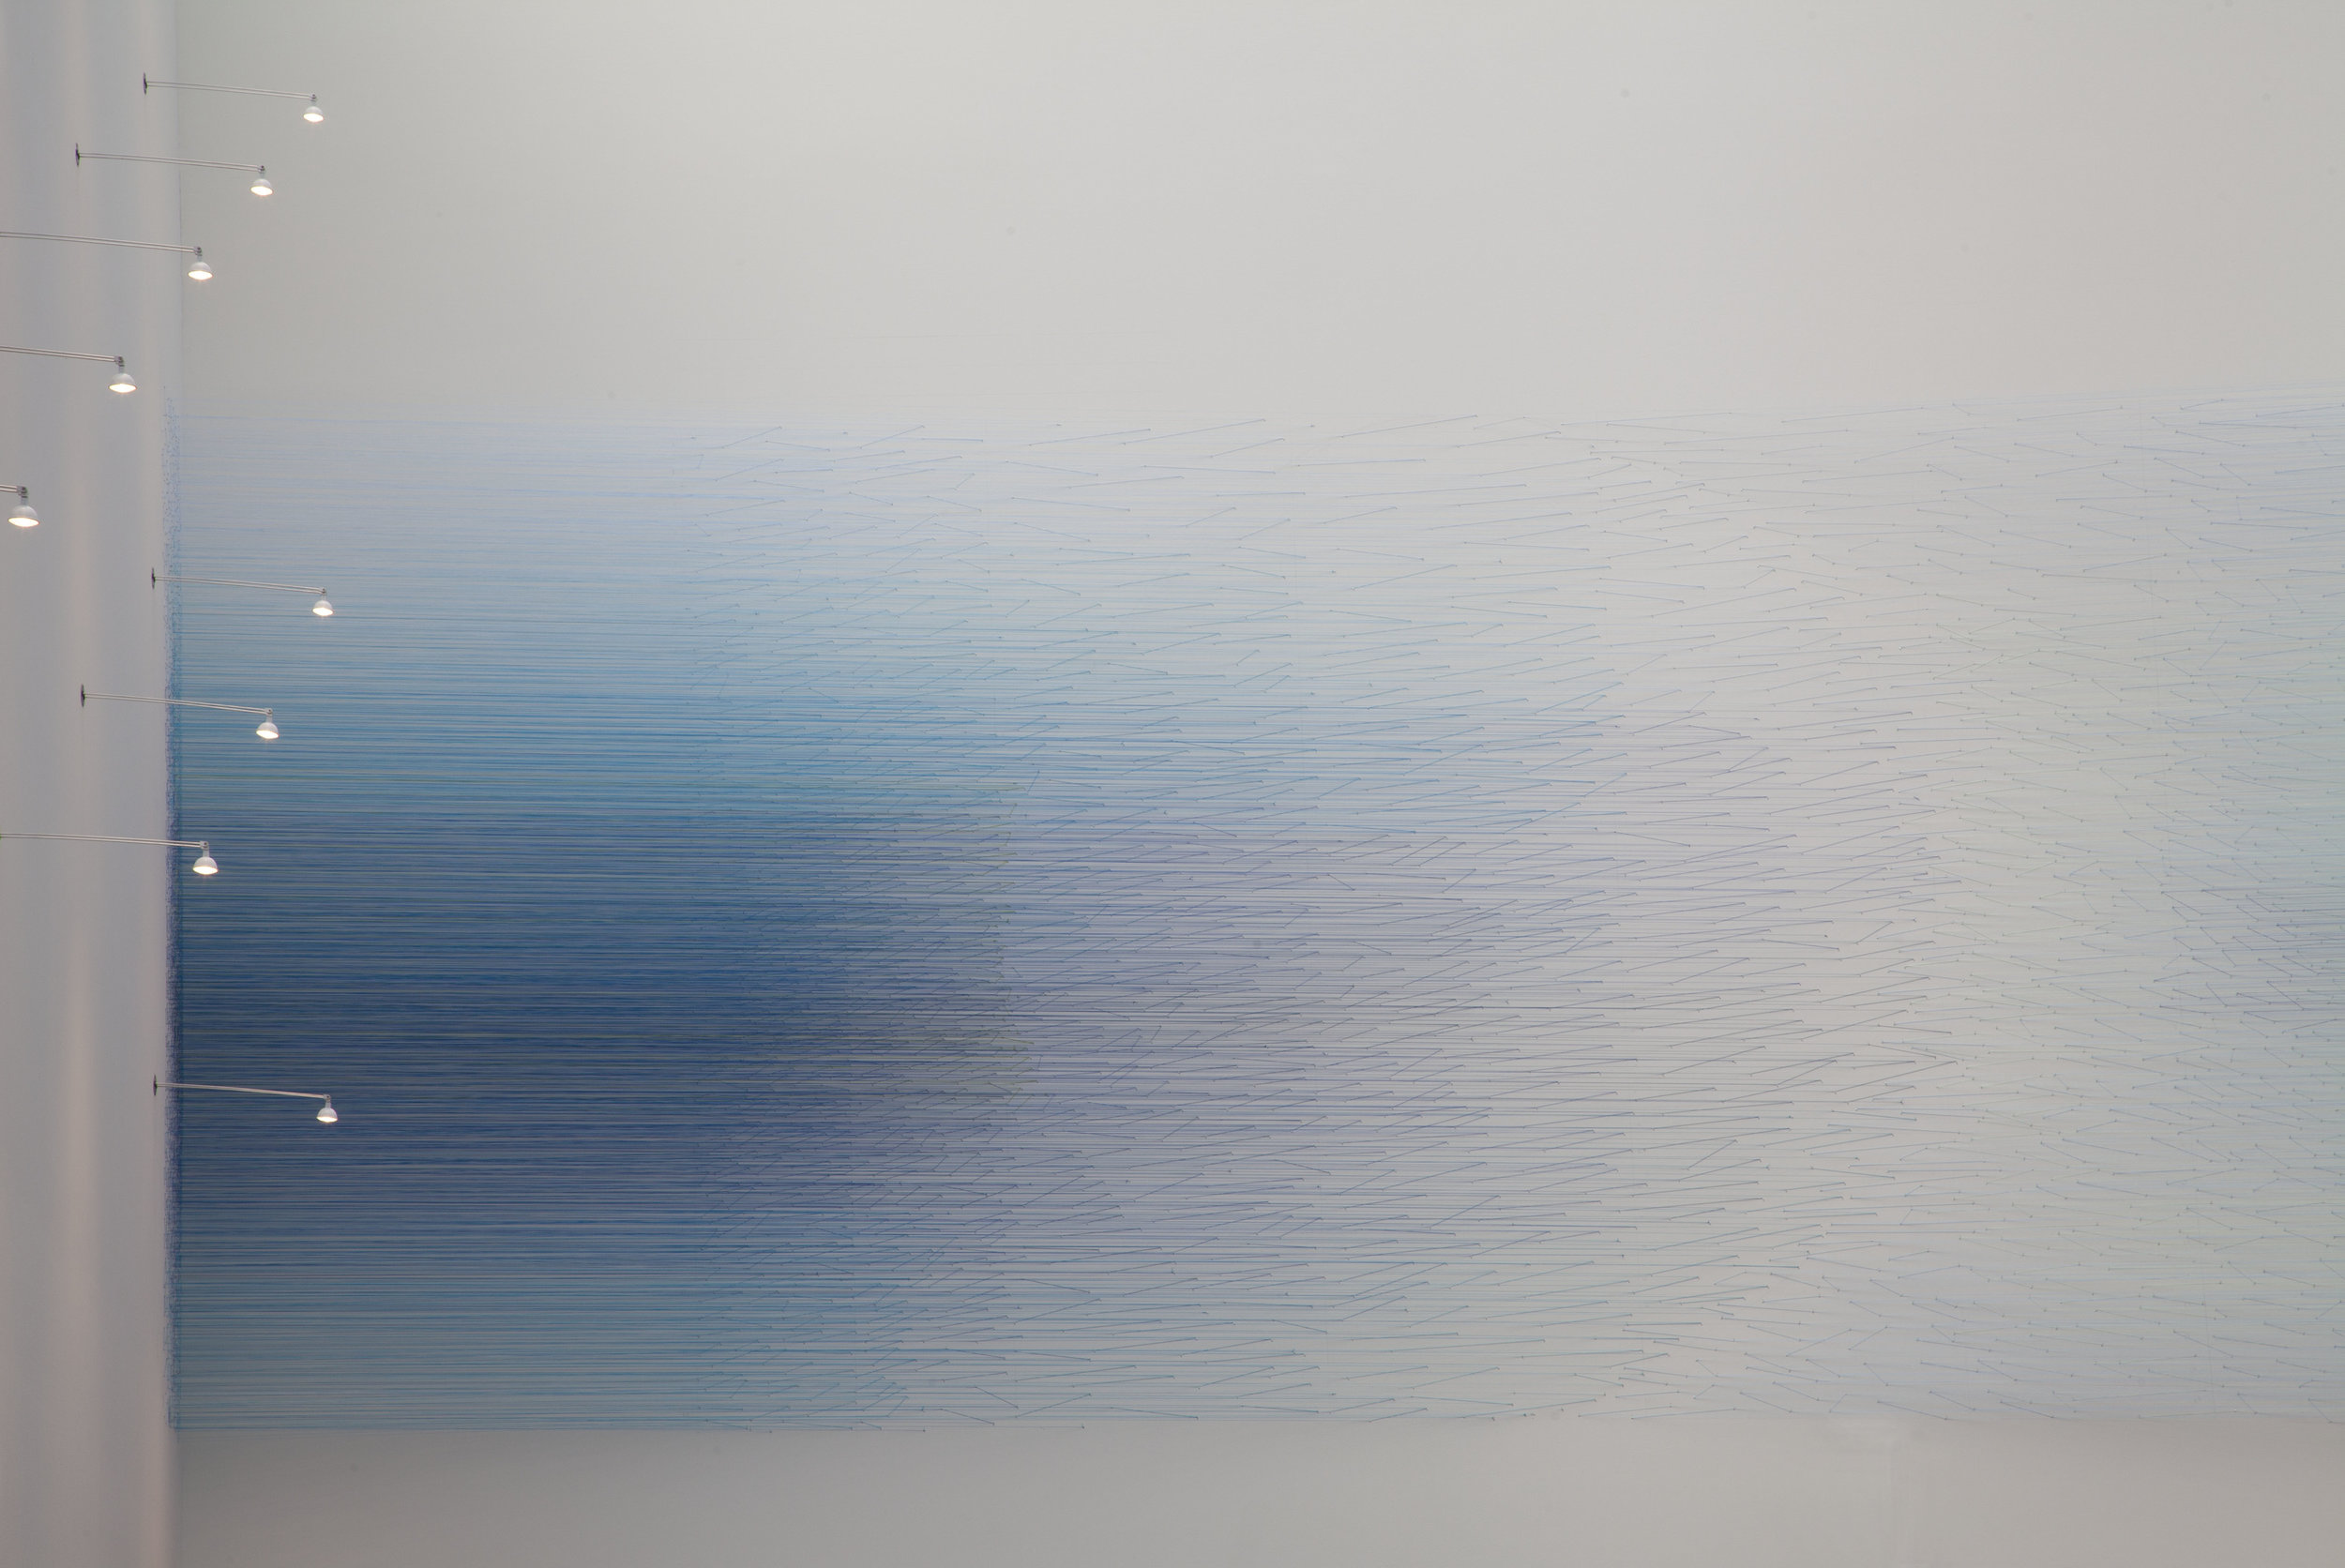 """Anne Lindberg,  """"At first the visible obscures:""""  thread and staples, 9 by 26 by 2ft - title is from Theodore Roethke's poem Unfold! Unfold!"""